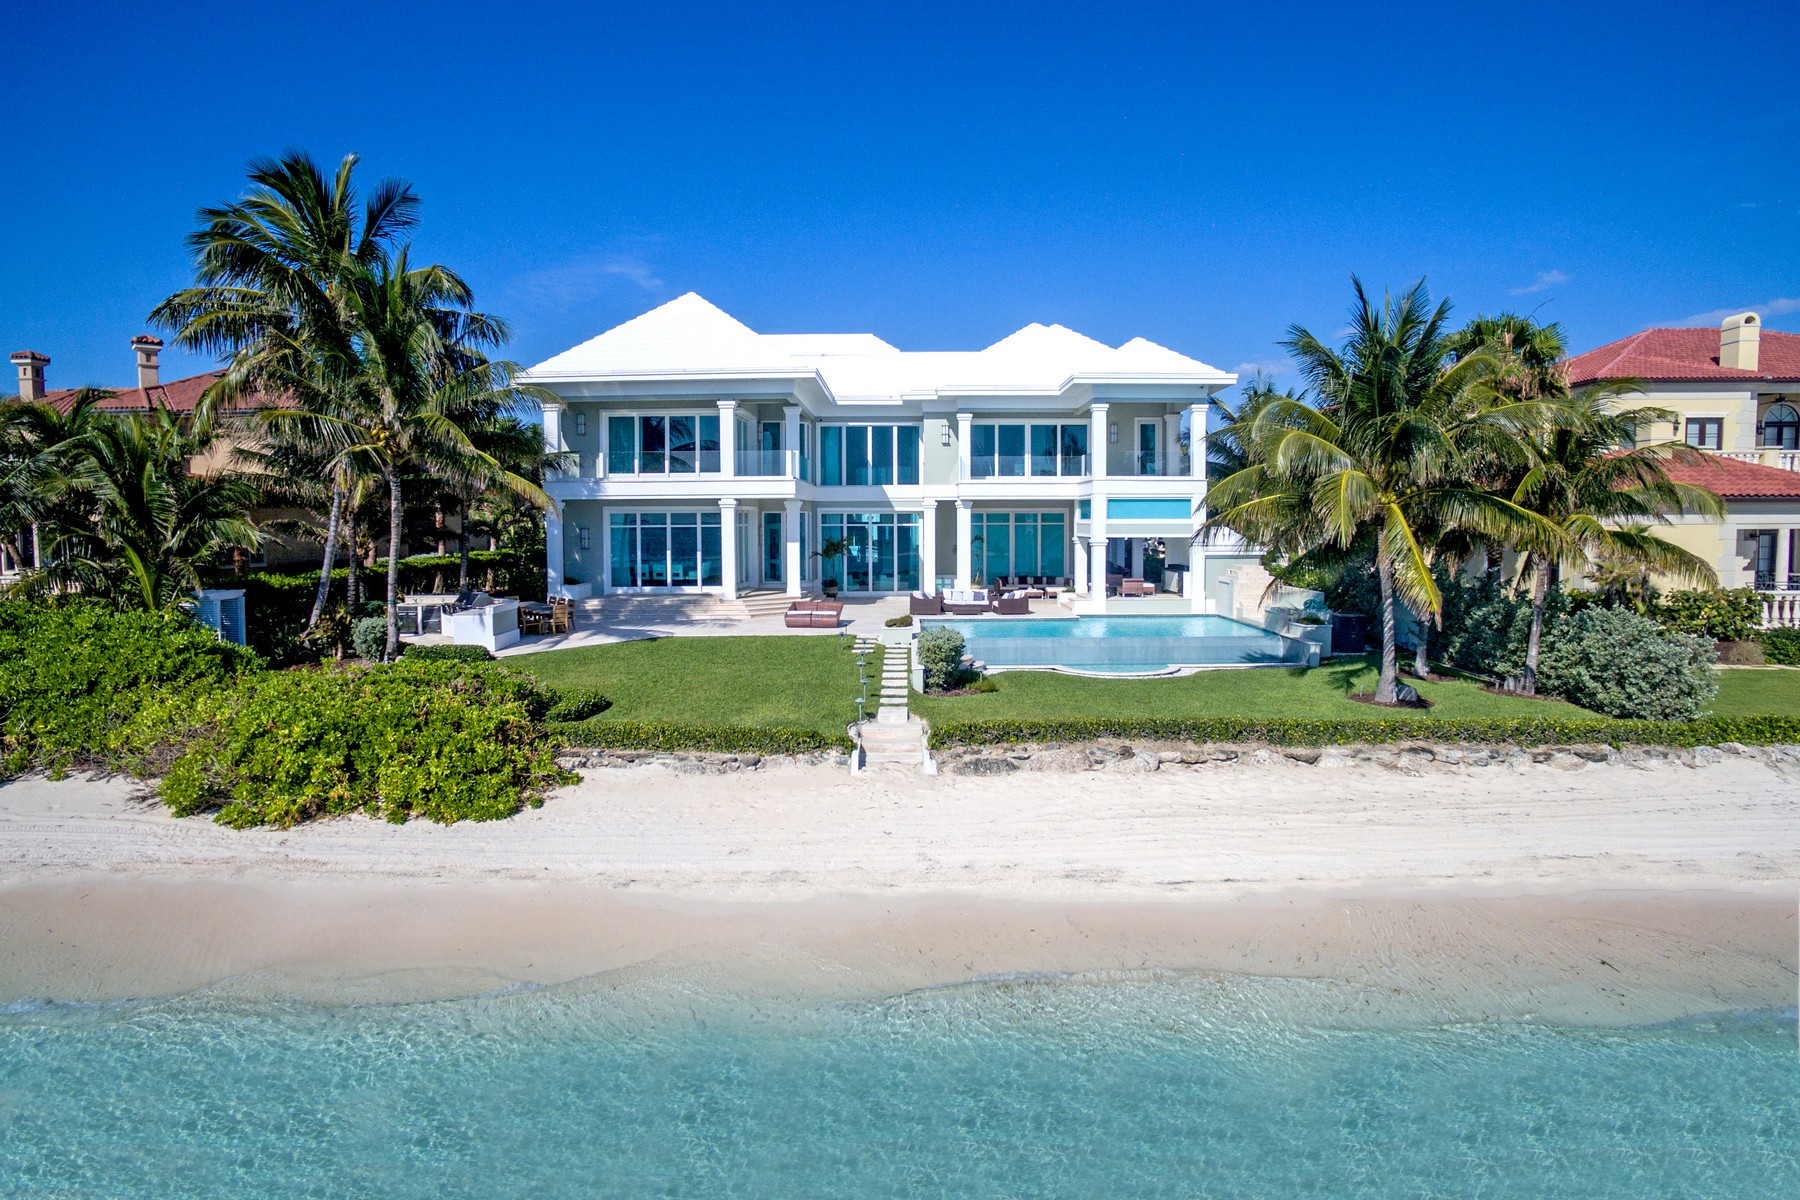 Single Family Home for Sale at 38 Ocean Club Estates Ocean Club Estates, Paradise Island, Nassau And Paradise Island Bahamas